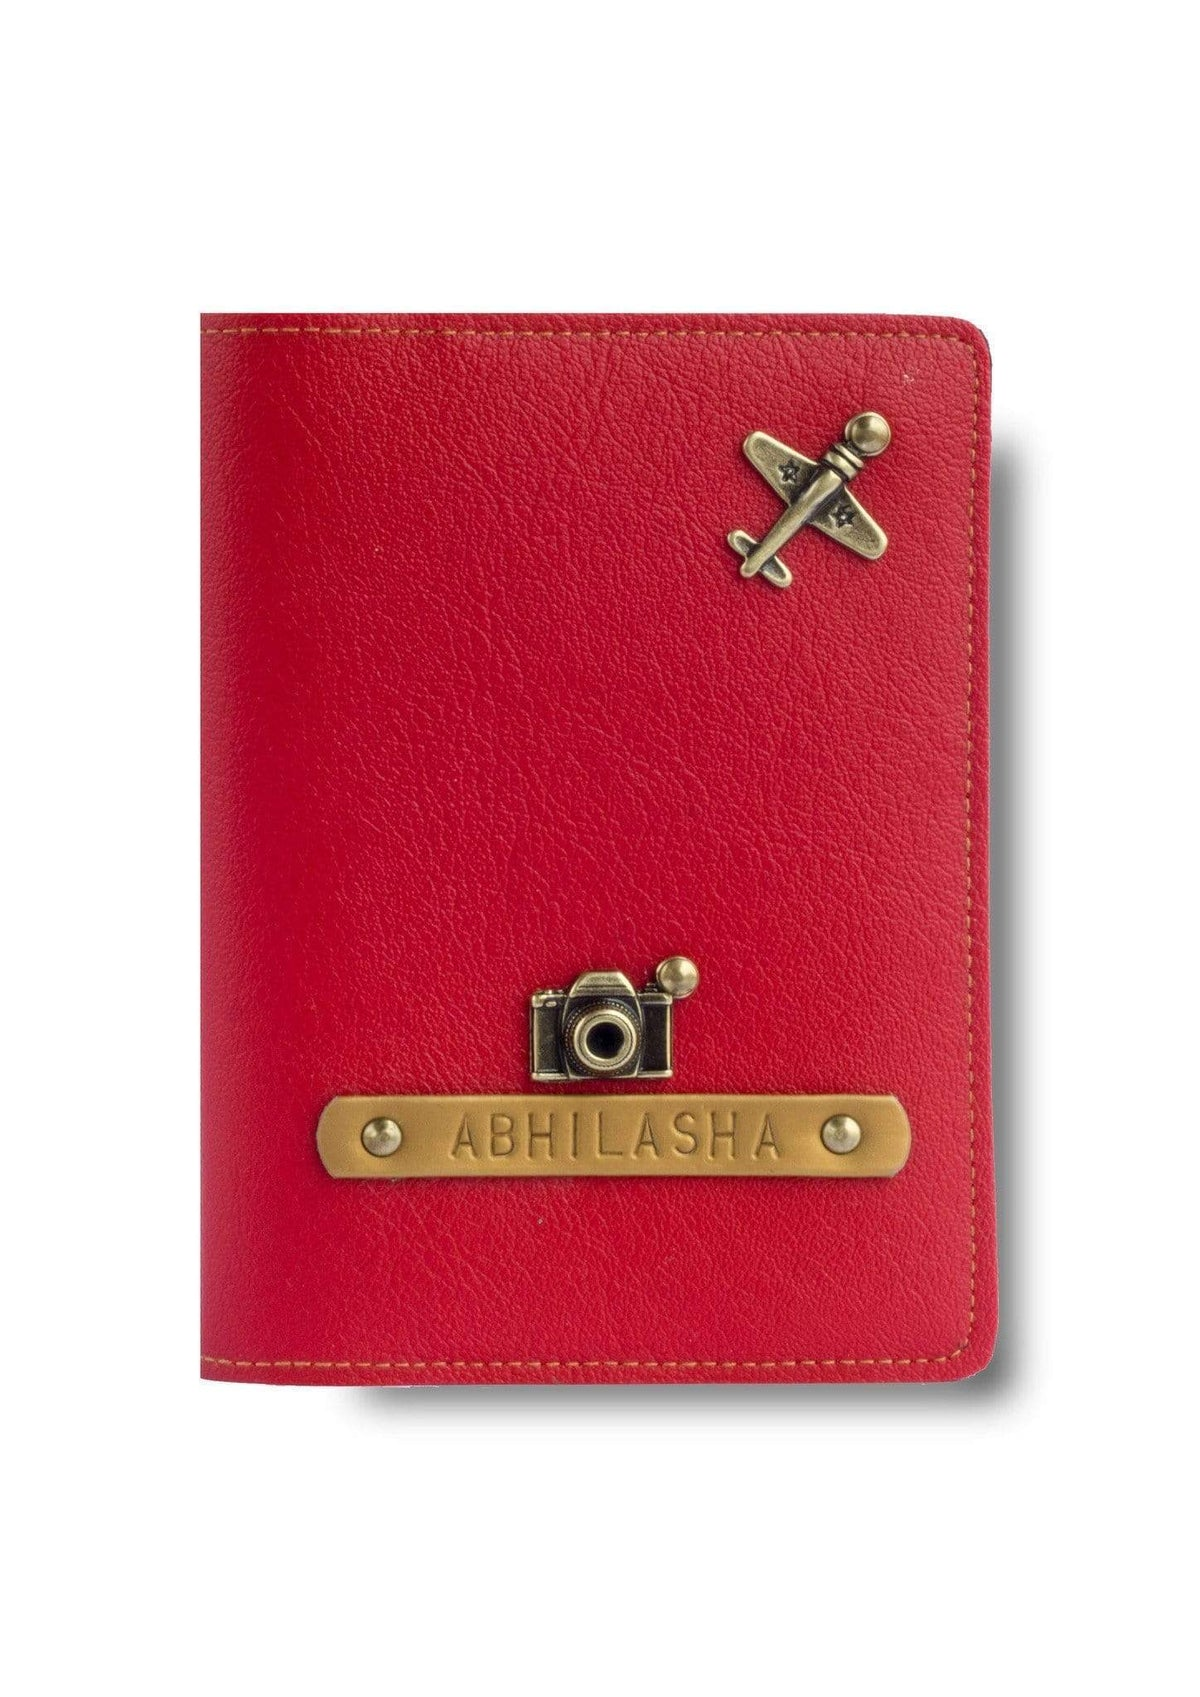 Passport Cover Case - Red Passport Cover